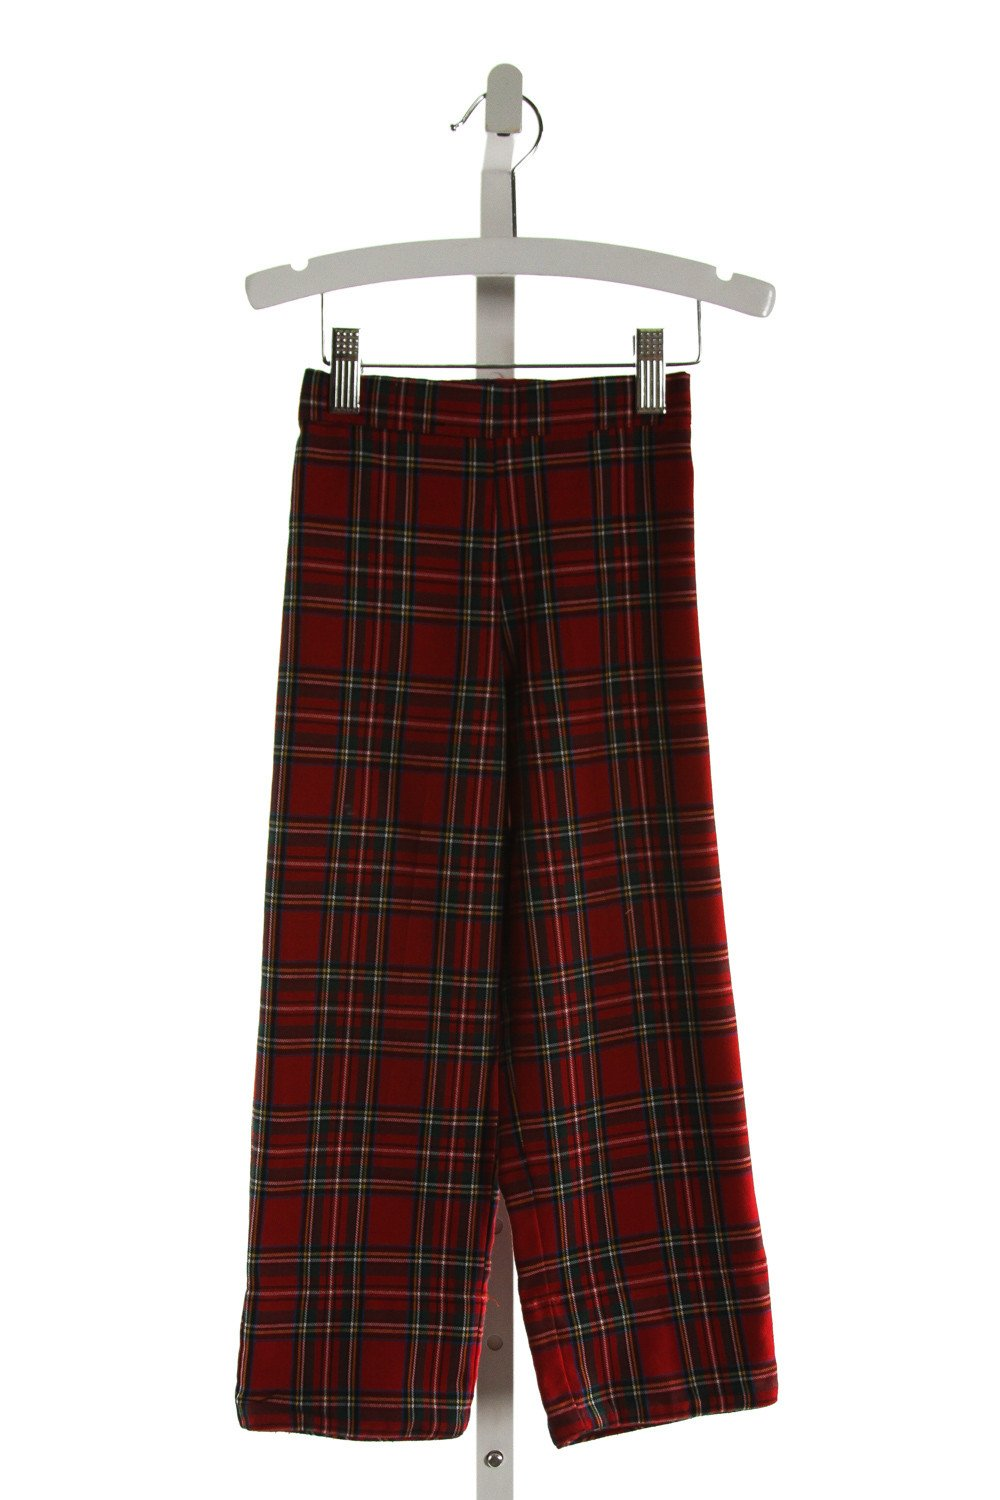 ALICE KATHLEEN  RED  PLAID  PANTS